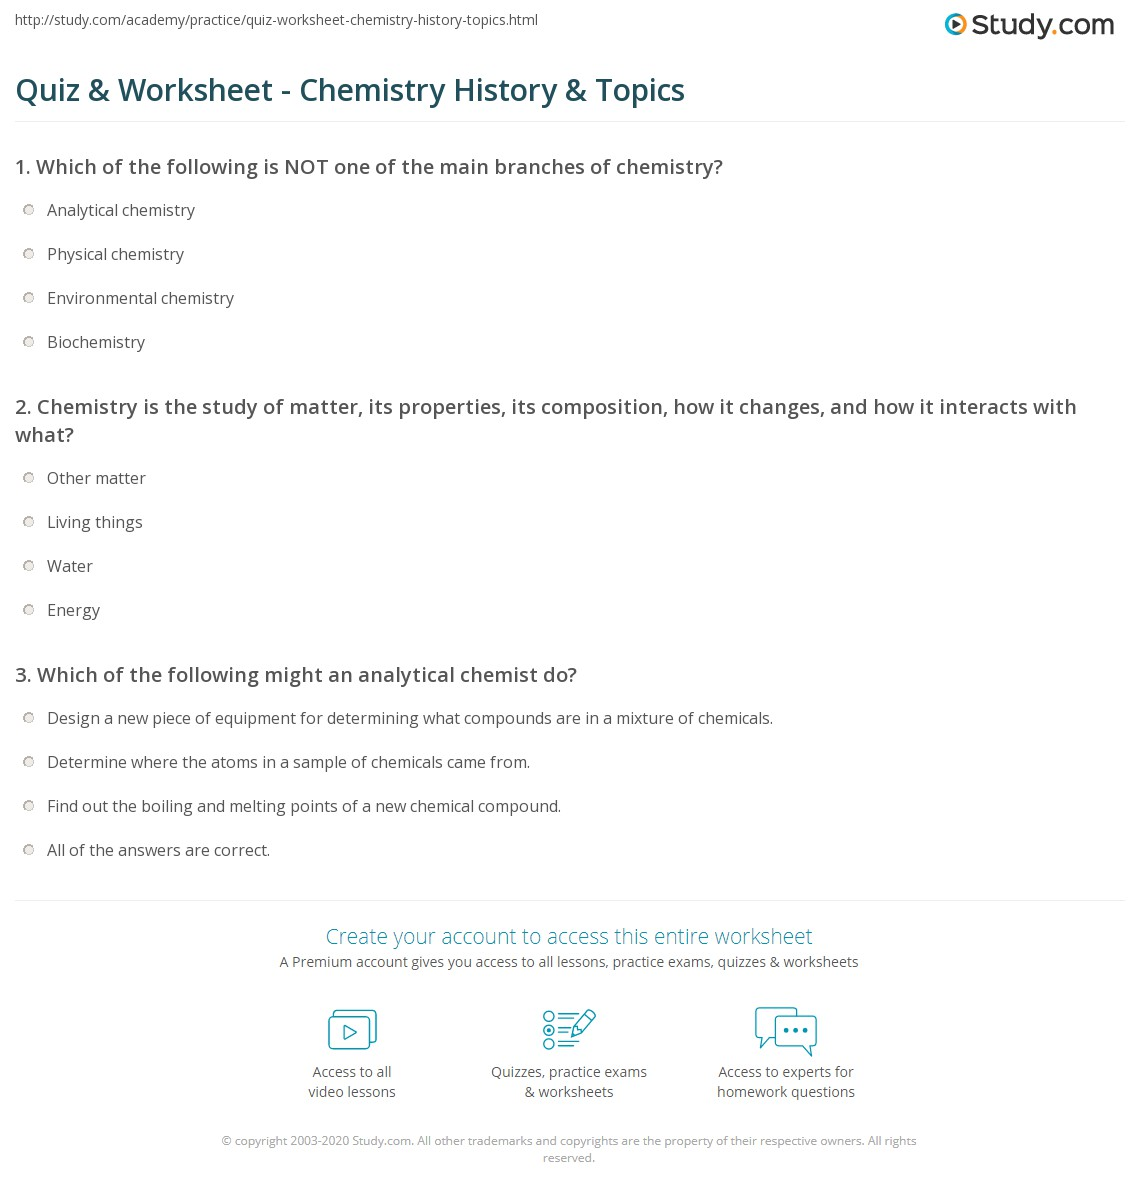 Chemistry Worksheet Matter 1 Answers Tecnologialinstante – Chemistry Worksheet Matter 1 Answers